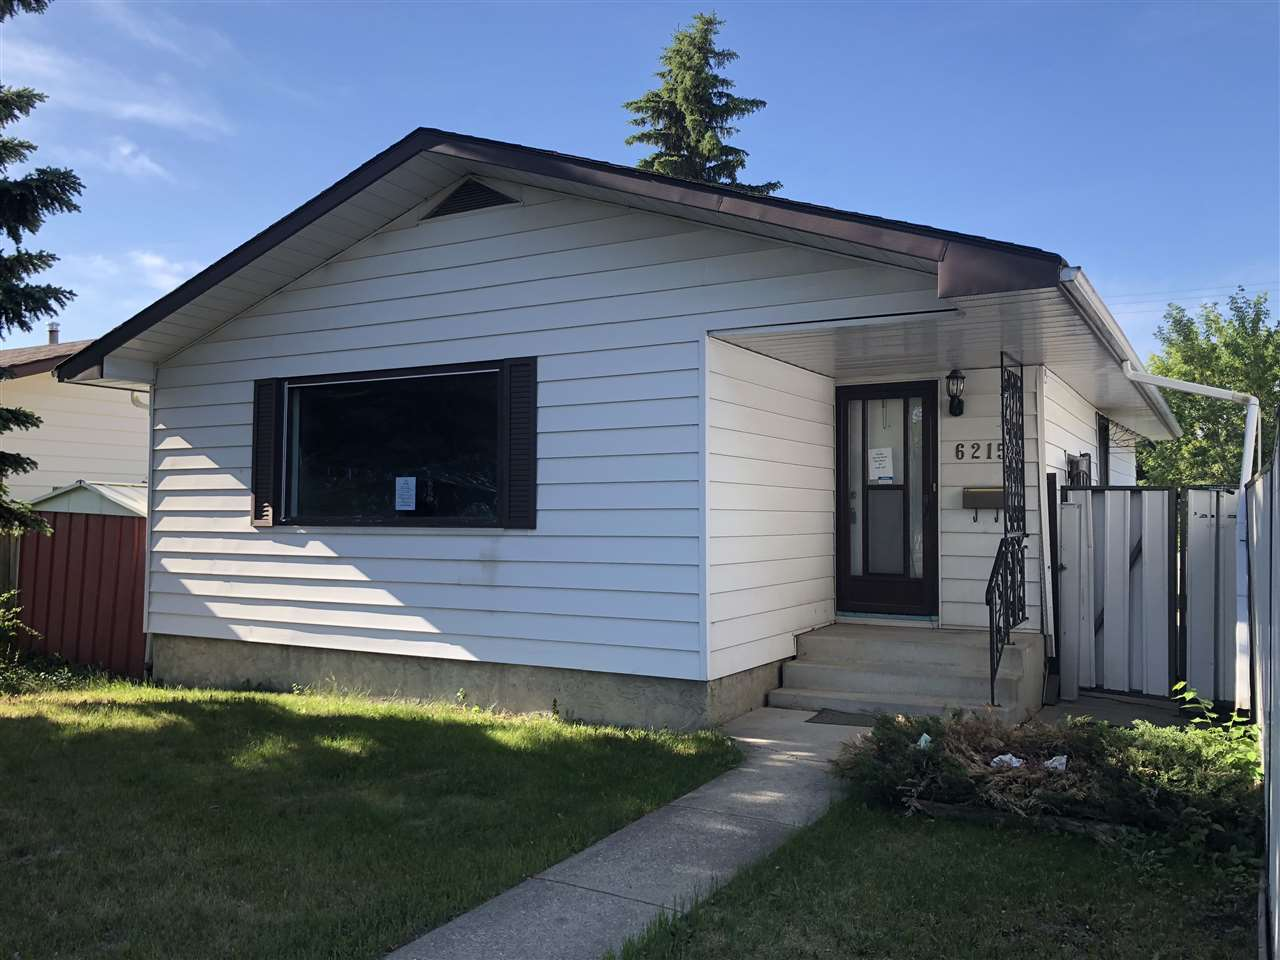 MLS® listing #E4173250 for sale located at 6215 137 Avenue